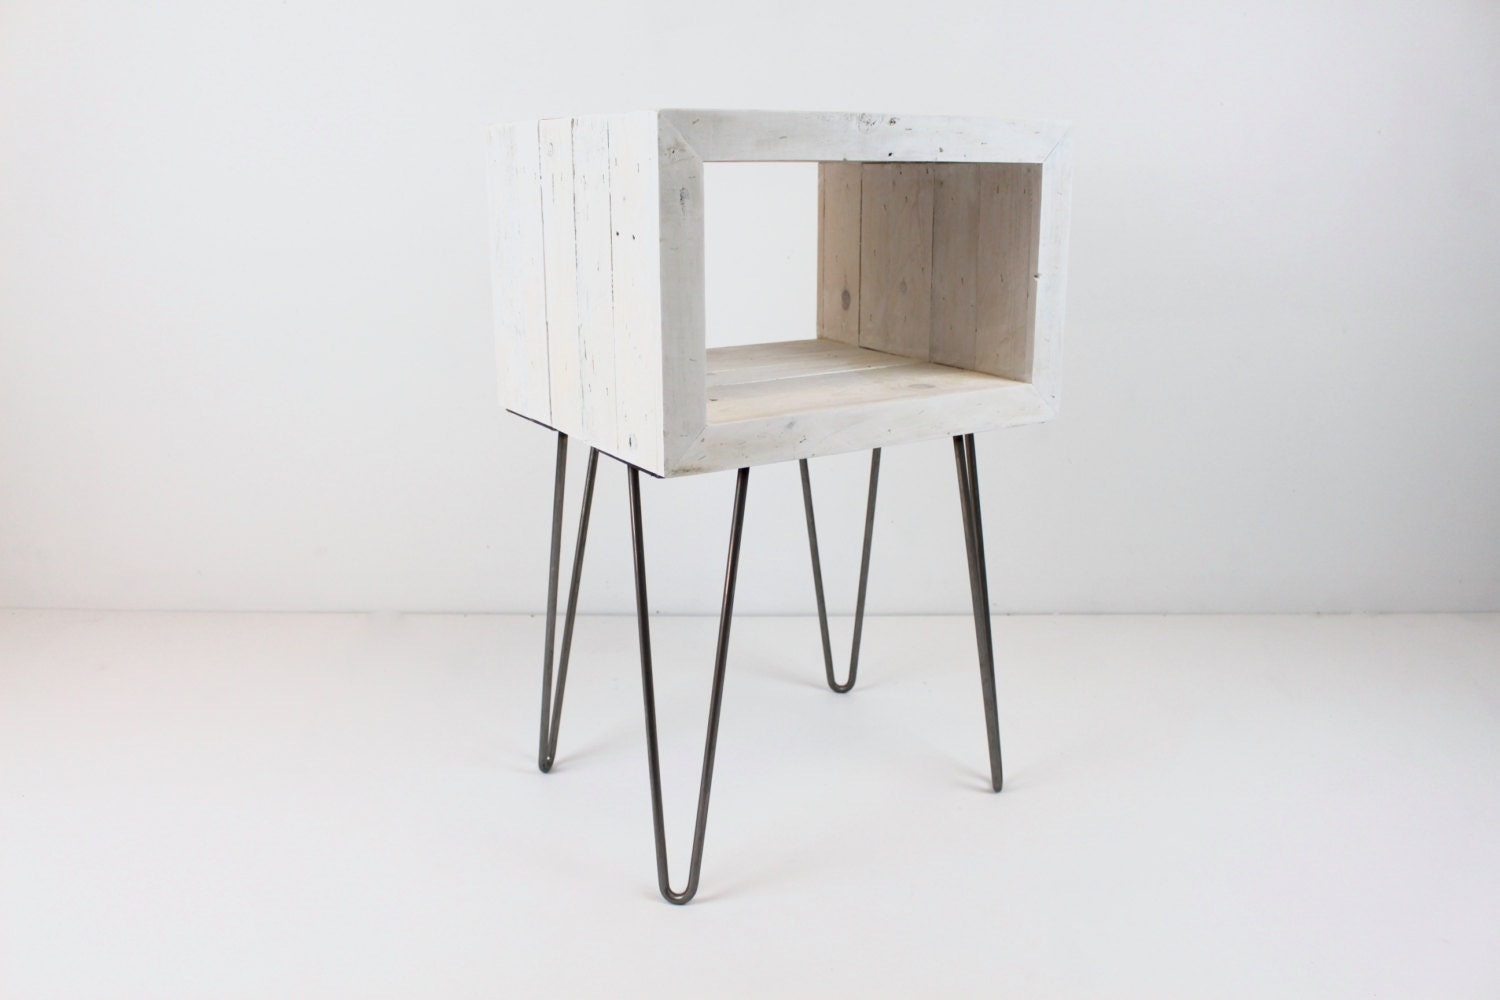 Reclaimed Wood Rustic Modern White Washed Open Side Table/ End